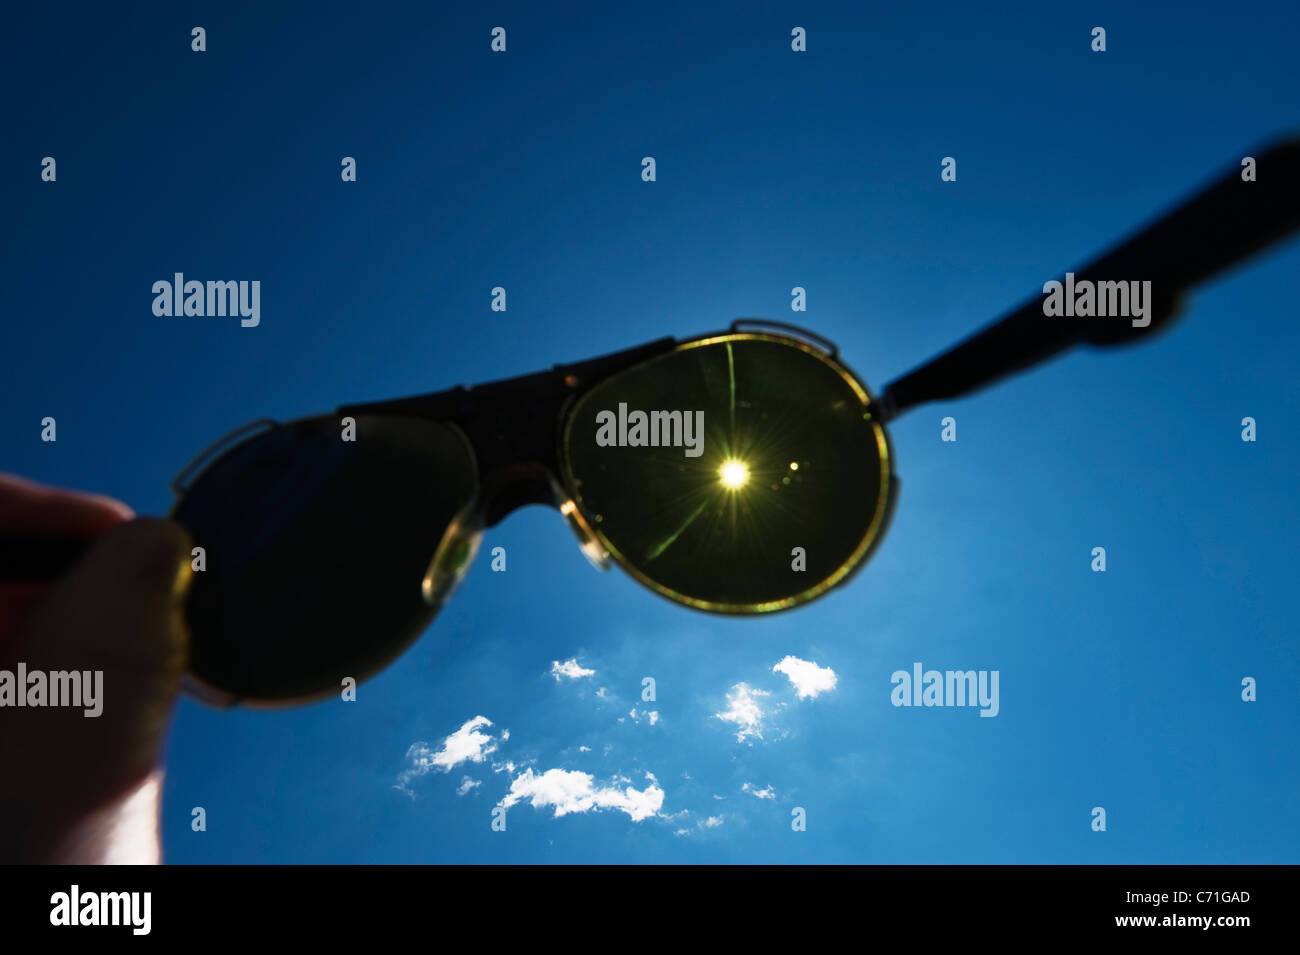 ea69b93d29e Hand holding strong glacier sunglasses up to the sun against a blue sky  with puffy white